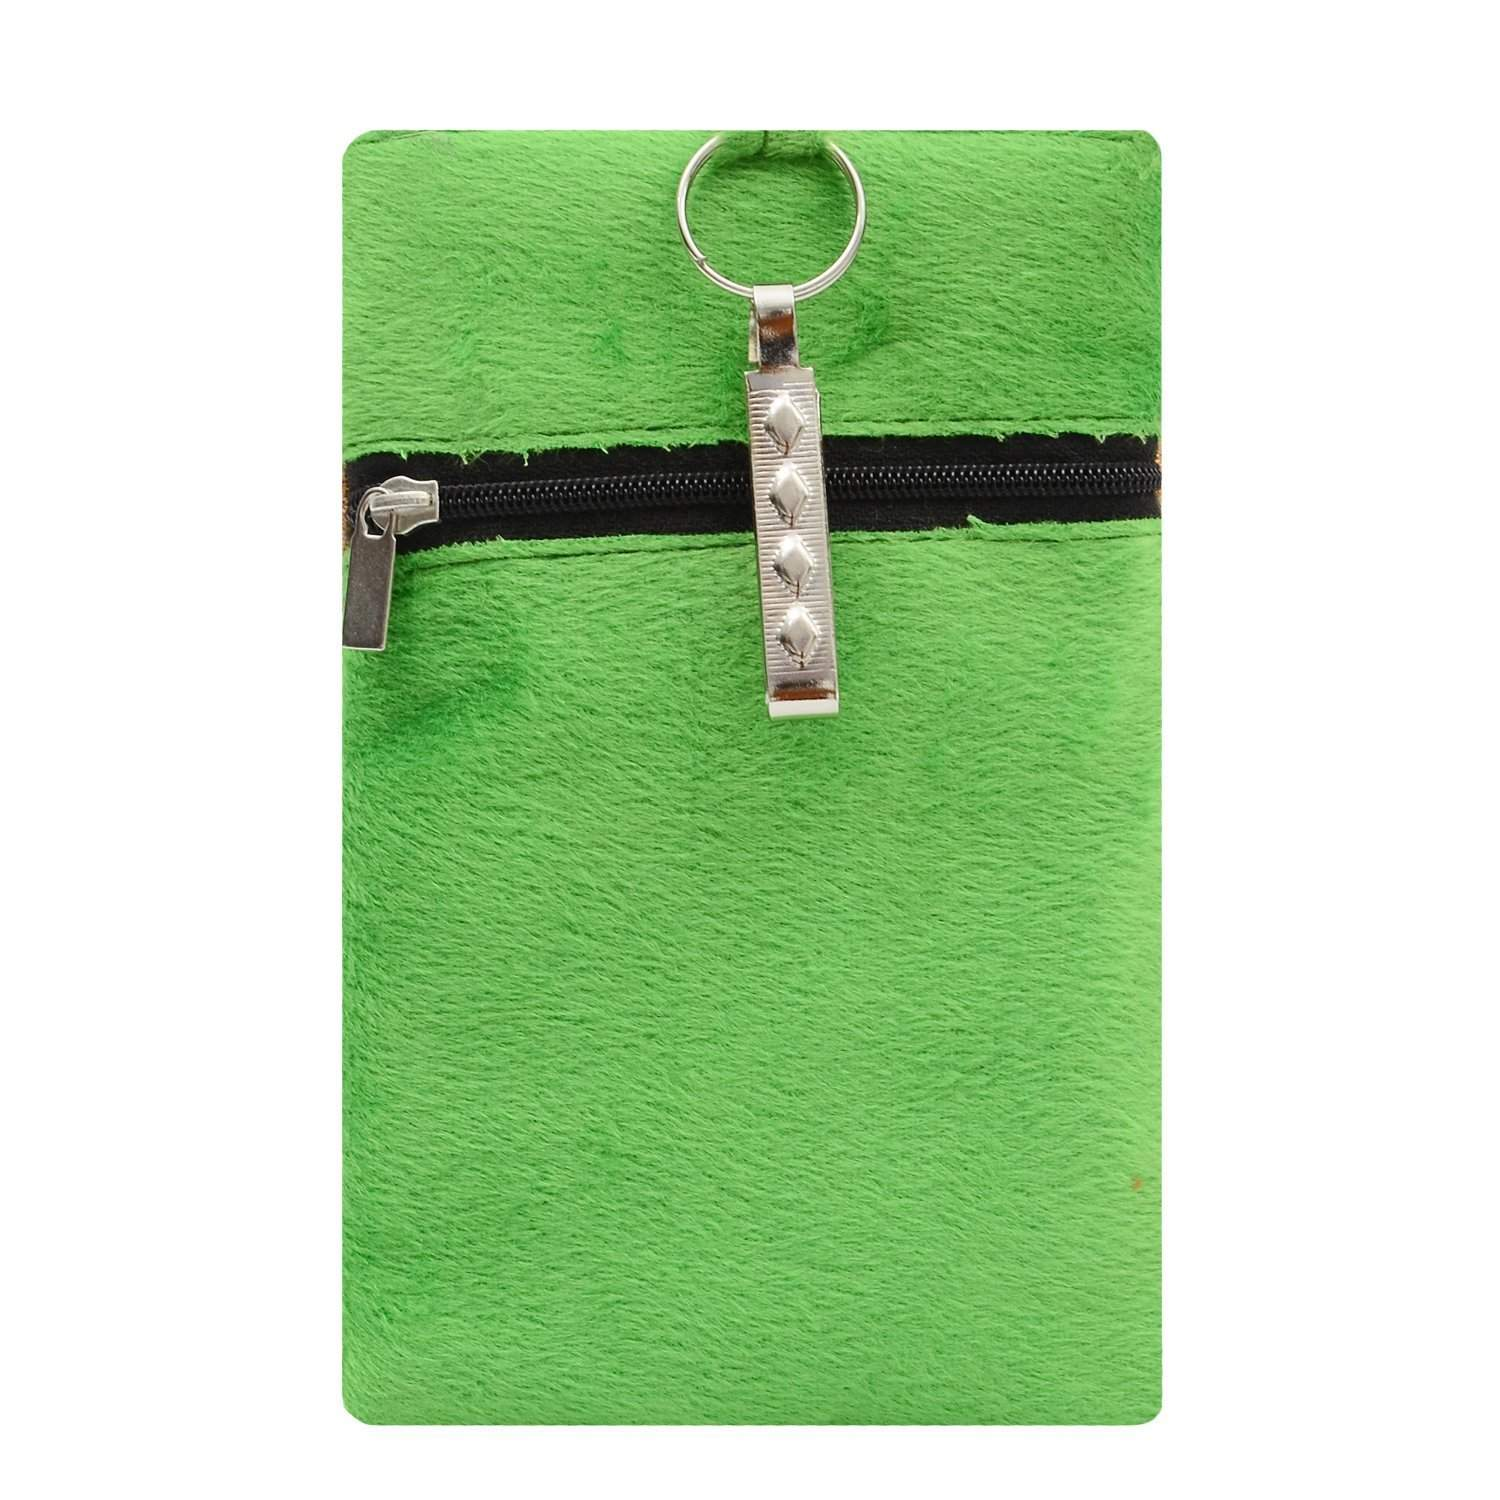 Waist Clip Mobile Pouch (Green) - Bagaholics Gift